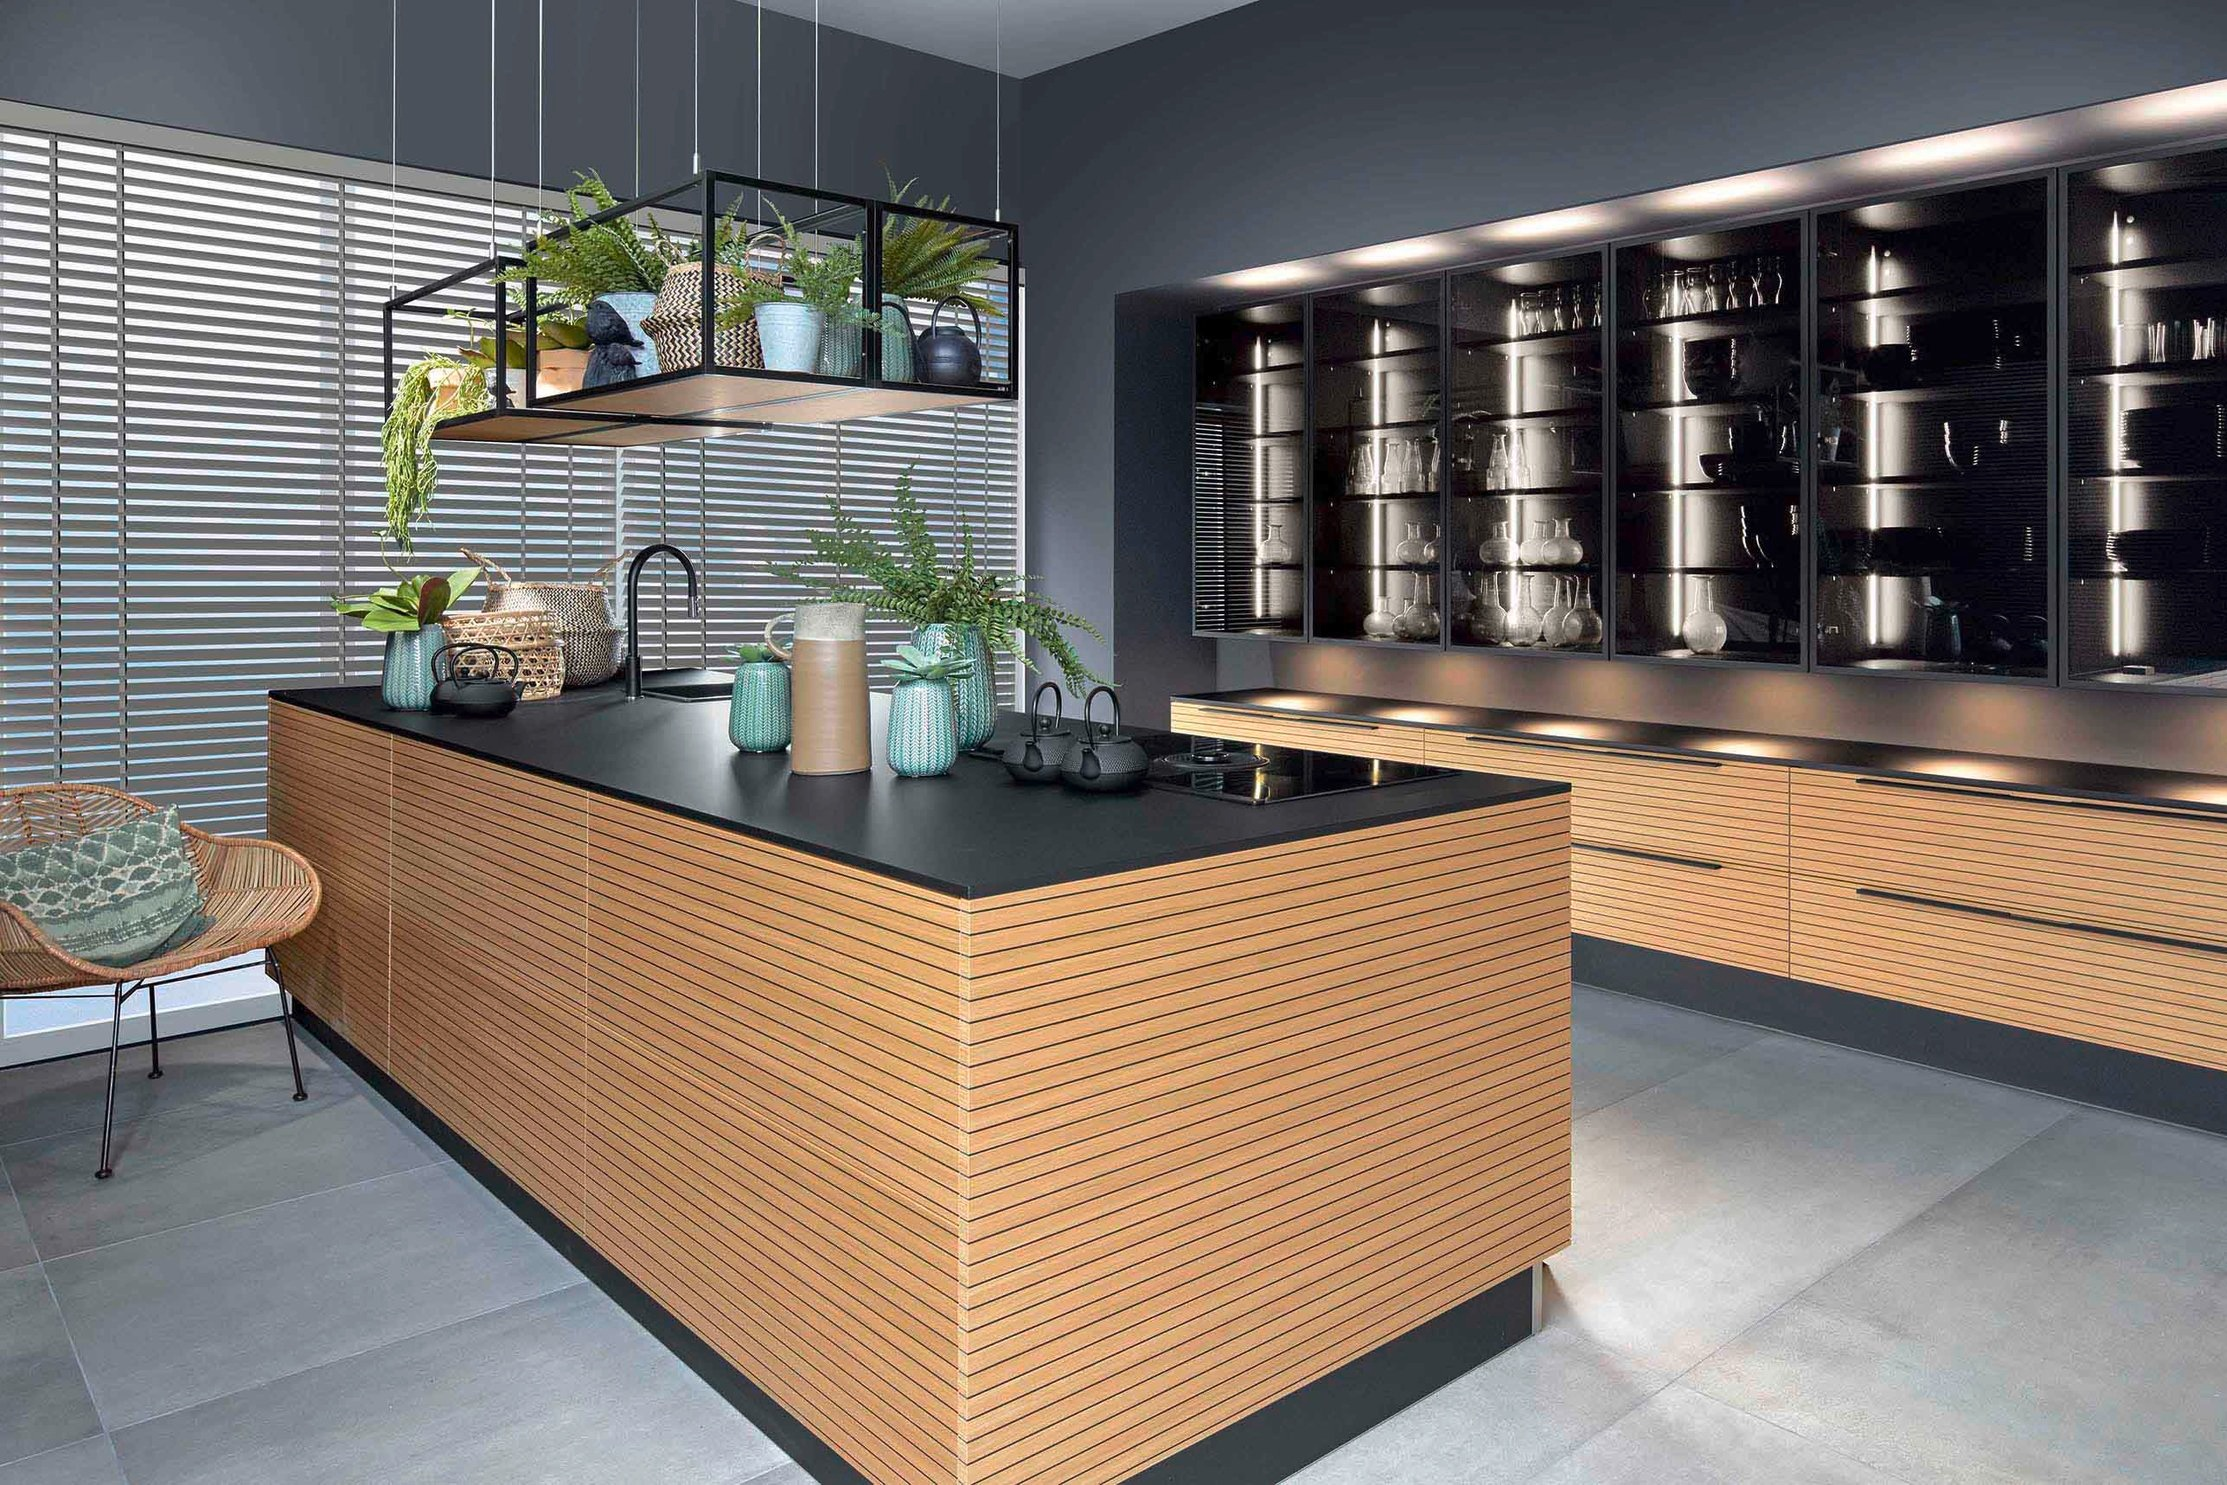 Kitchen Design - Our kitchens provide an abundance of ideas with vast planning opportunities. We recognise that each of our clients have their own ideals and preferences. We strive to meet our customers' requirements to achieve the perfect contemporary kitchens.